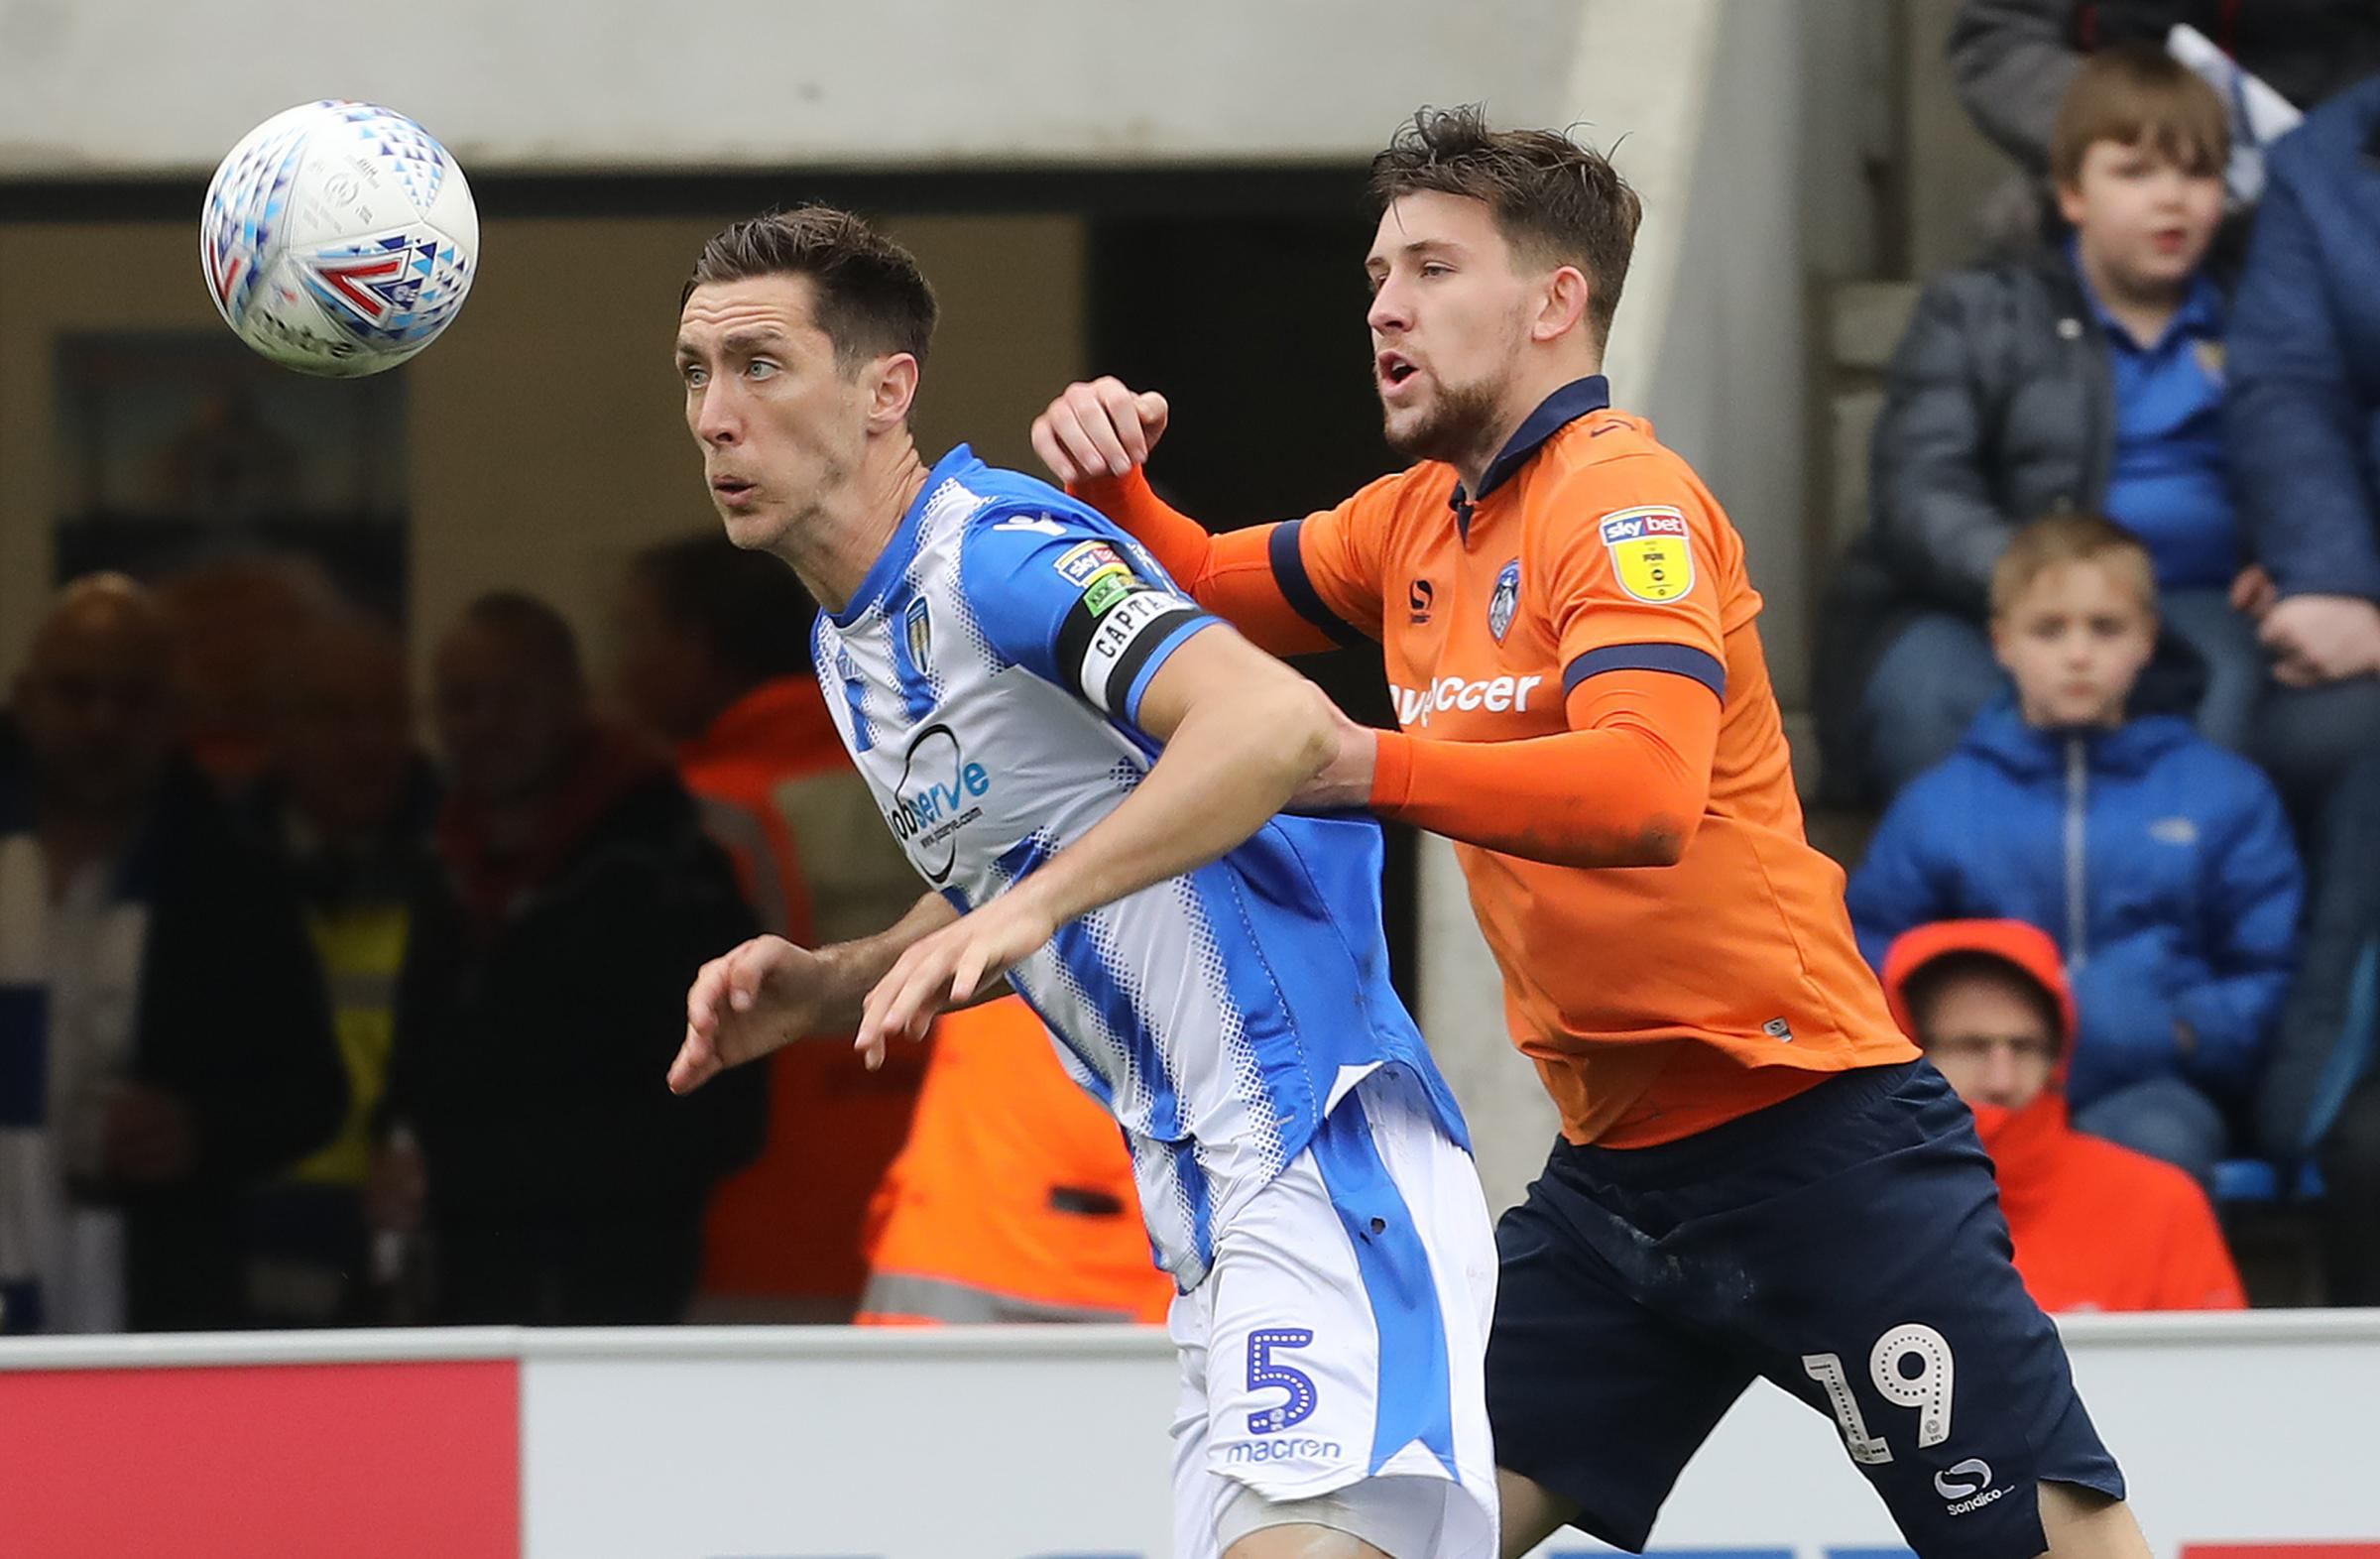 Heads up - Colchester United captain Luke Prosser tussles with Oldham Athletic scorer Callum Lang during the U's 2-0 defeat Picture: STEVE BRADING